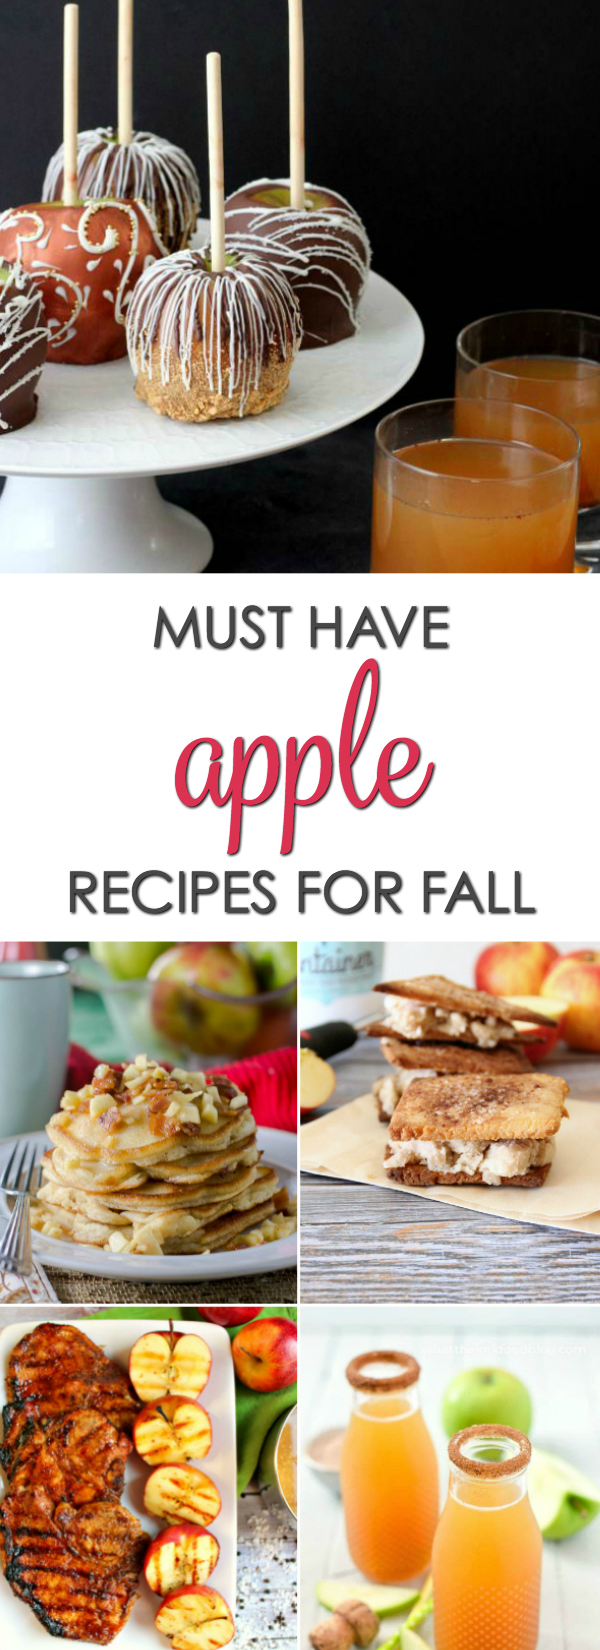 Must have fall apple recipes